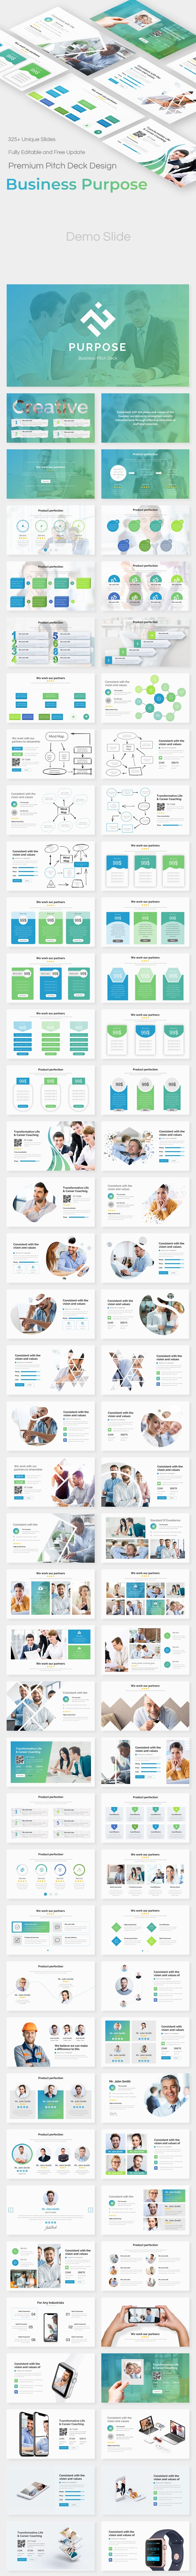 Business Purpose Pitch Deck Powerpoint Template - Business PowerPoint Templates